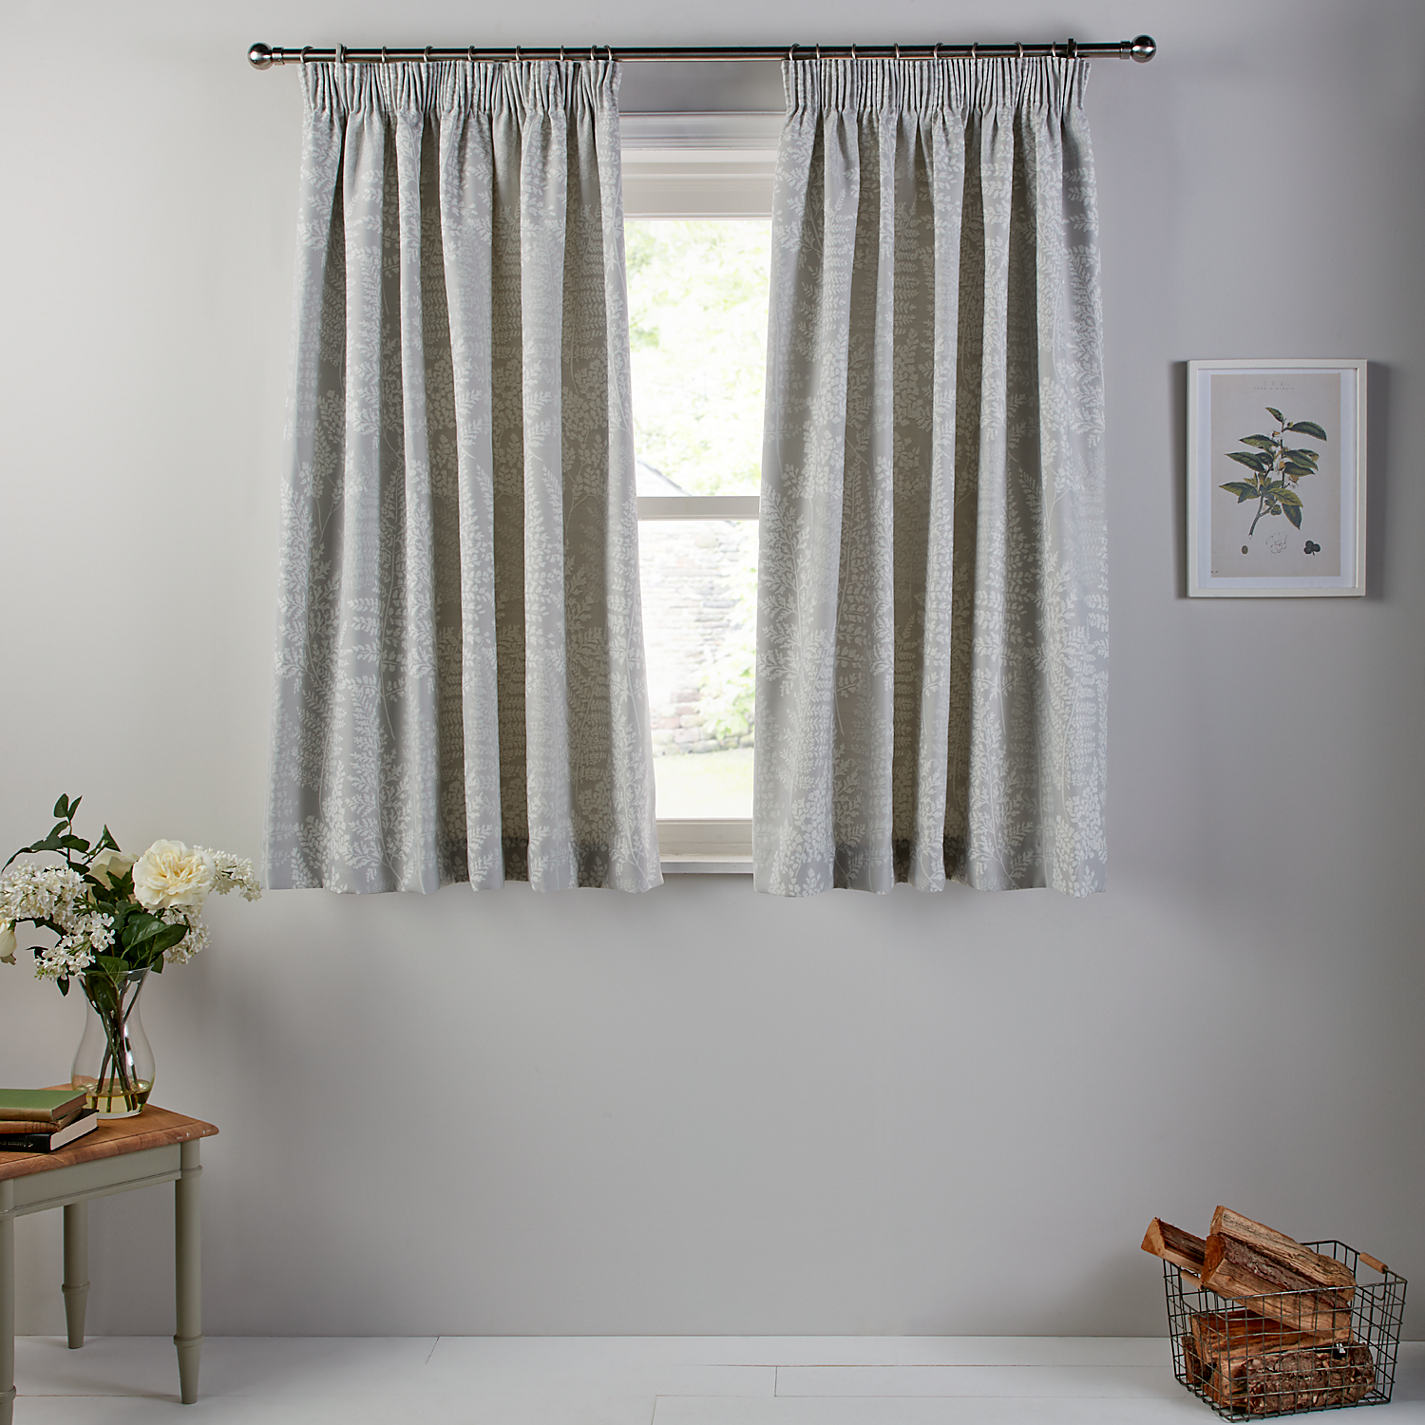 Buy John Lewis Fern Lined Pencil Pleat Curtains John Lewis - John lewis curtains grey